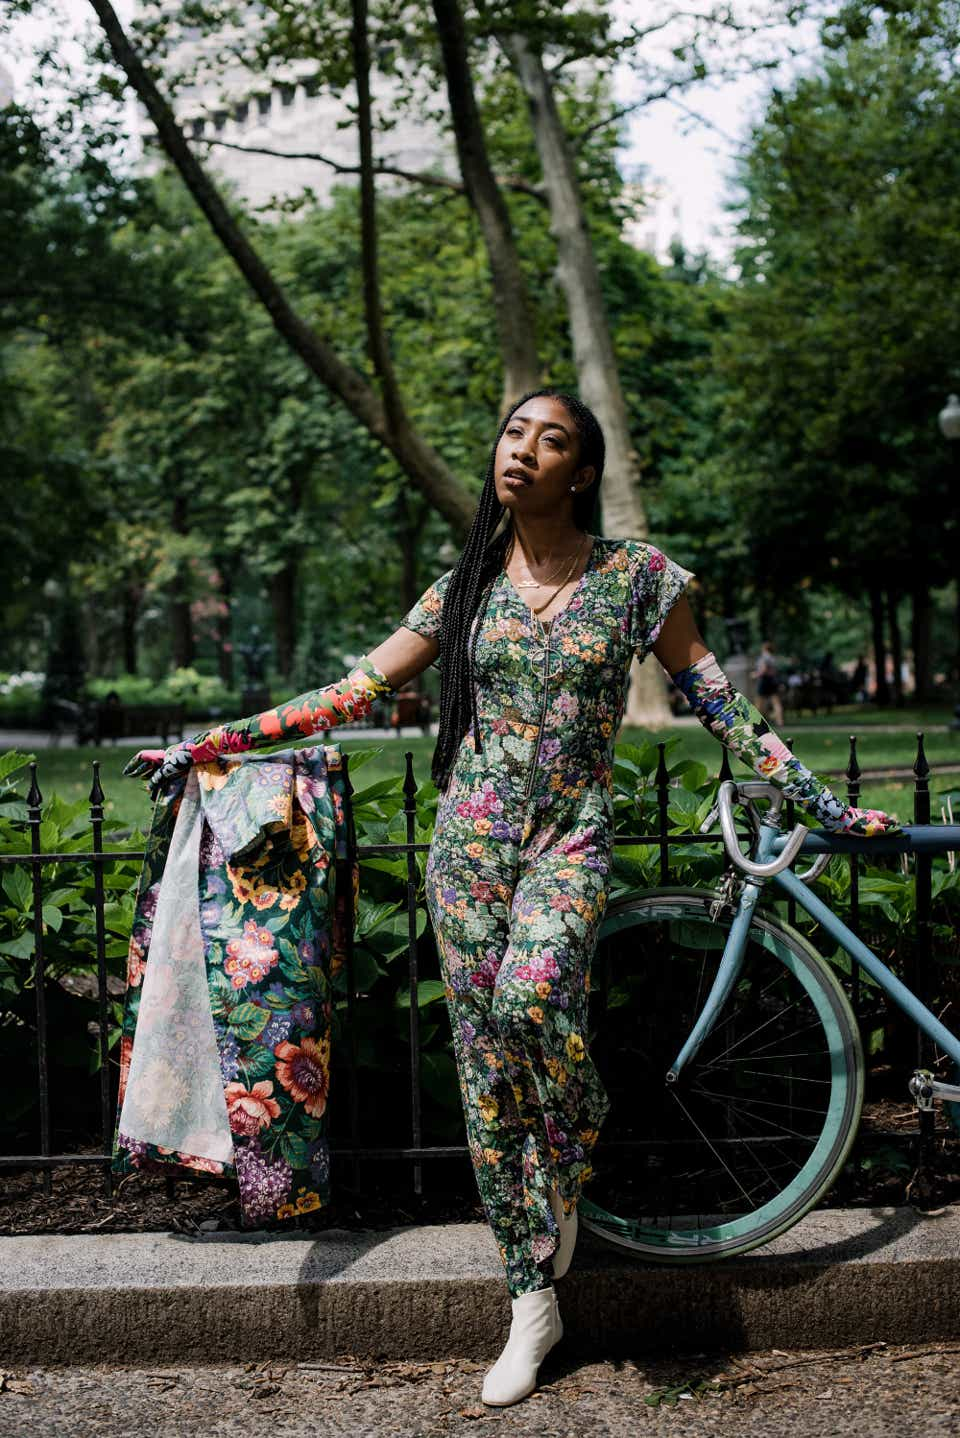 Kassie is posing next to her light blue bike in a park while wearing a floral jumpsuit, floral elbow-length gloves, and a floral jacket.